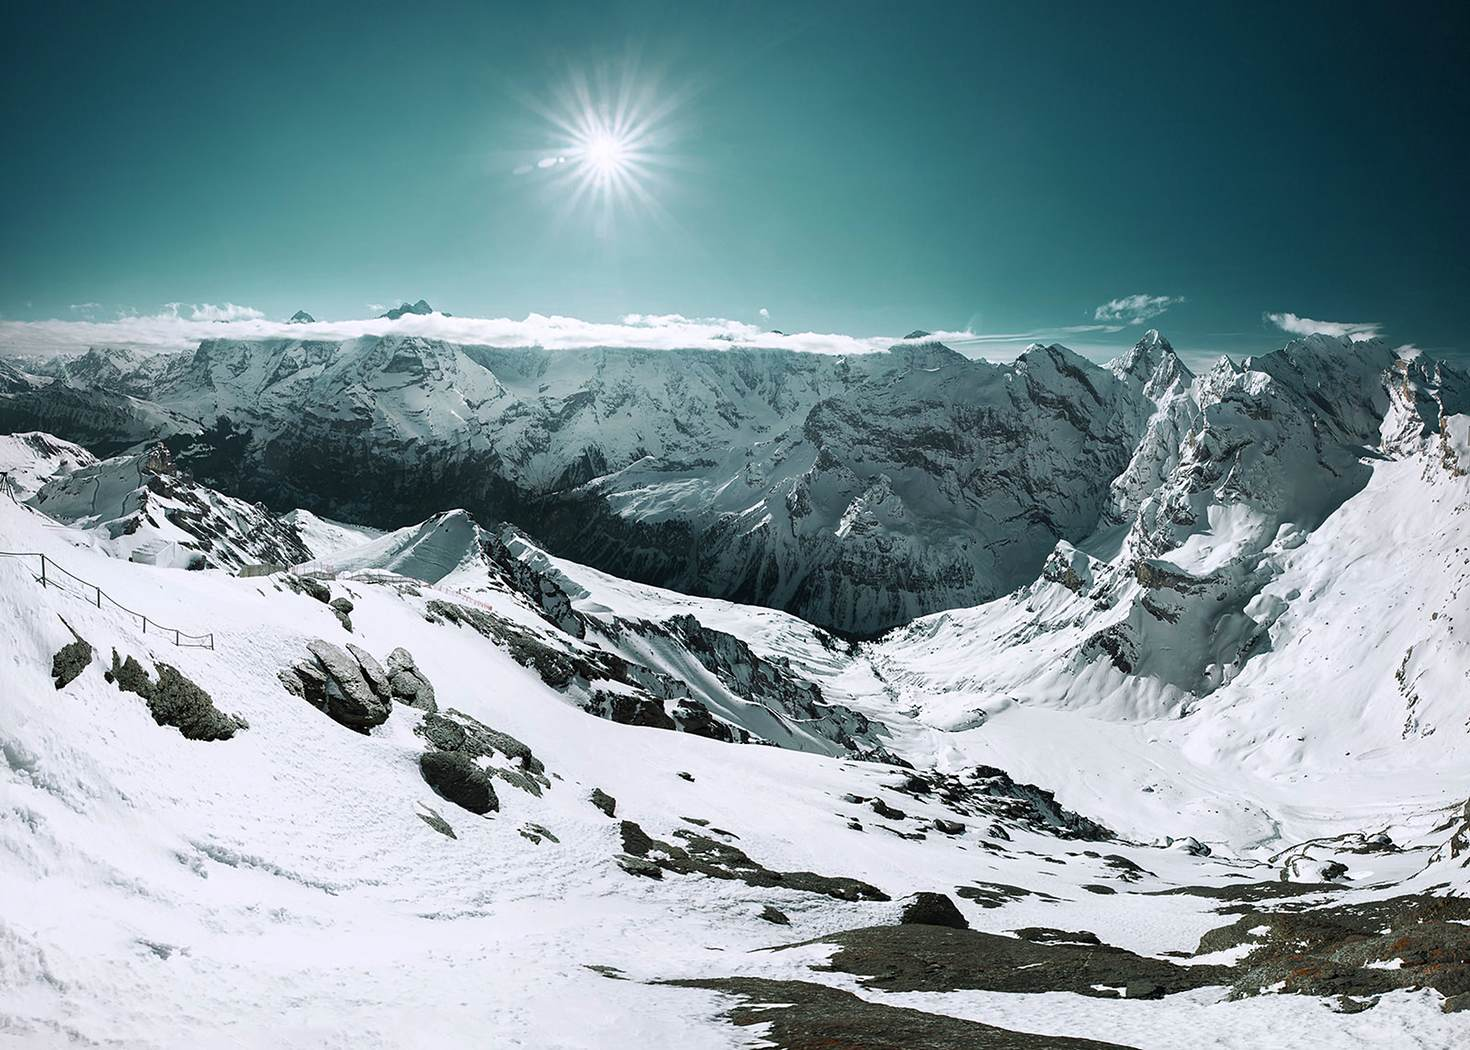 Thrill Walk will give you a fresh perspective from the awesome Schilthorn mountain © Steffen Egly